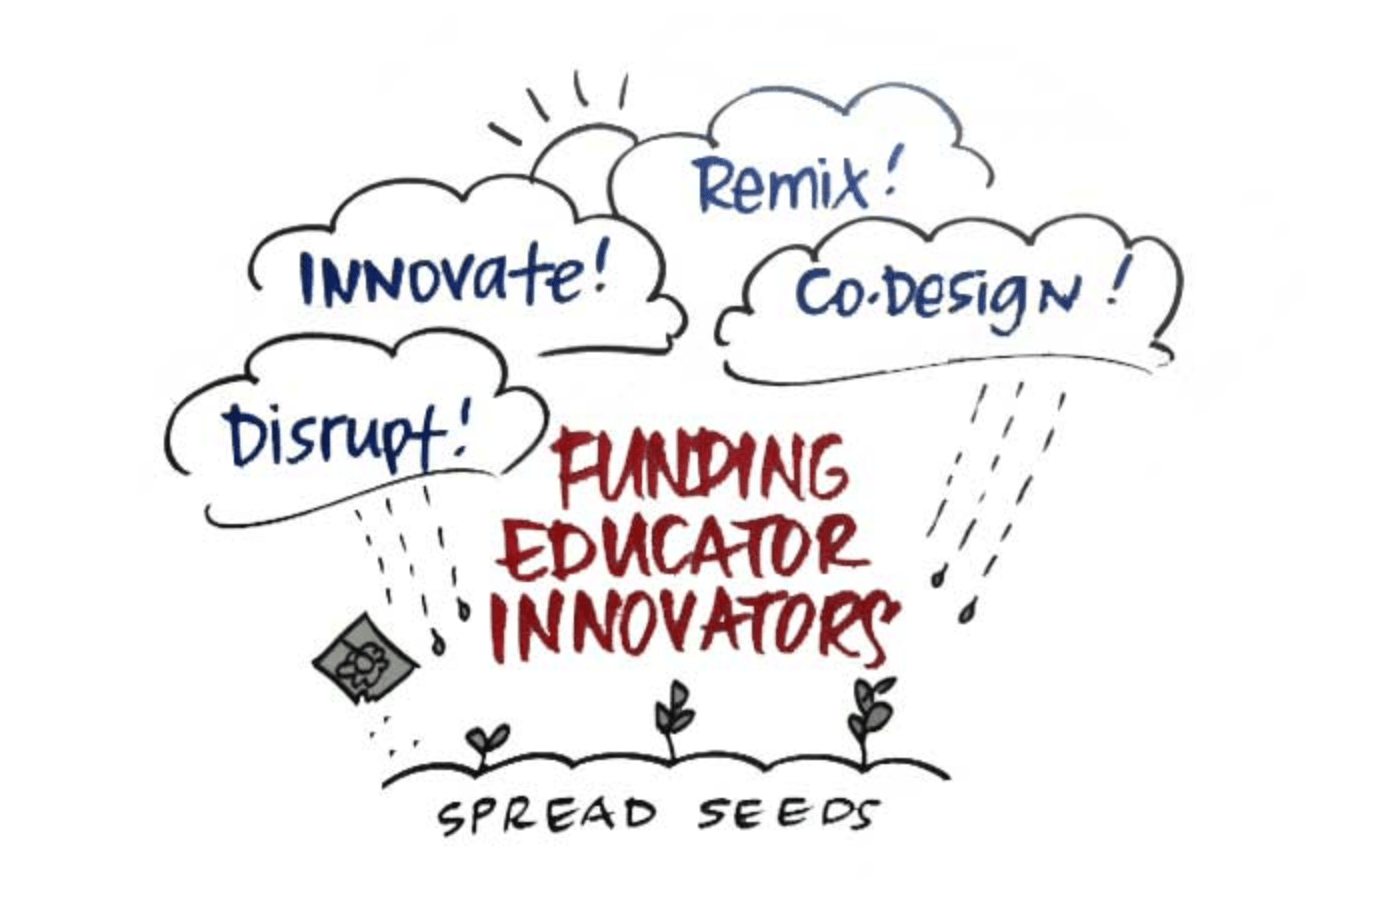 Innovation Hour gets a big boost from Educator Innovator